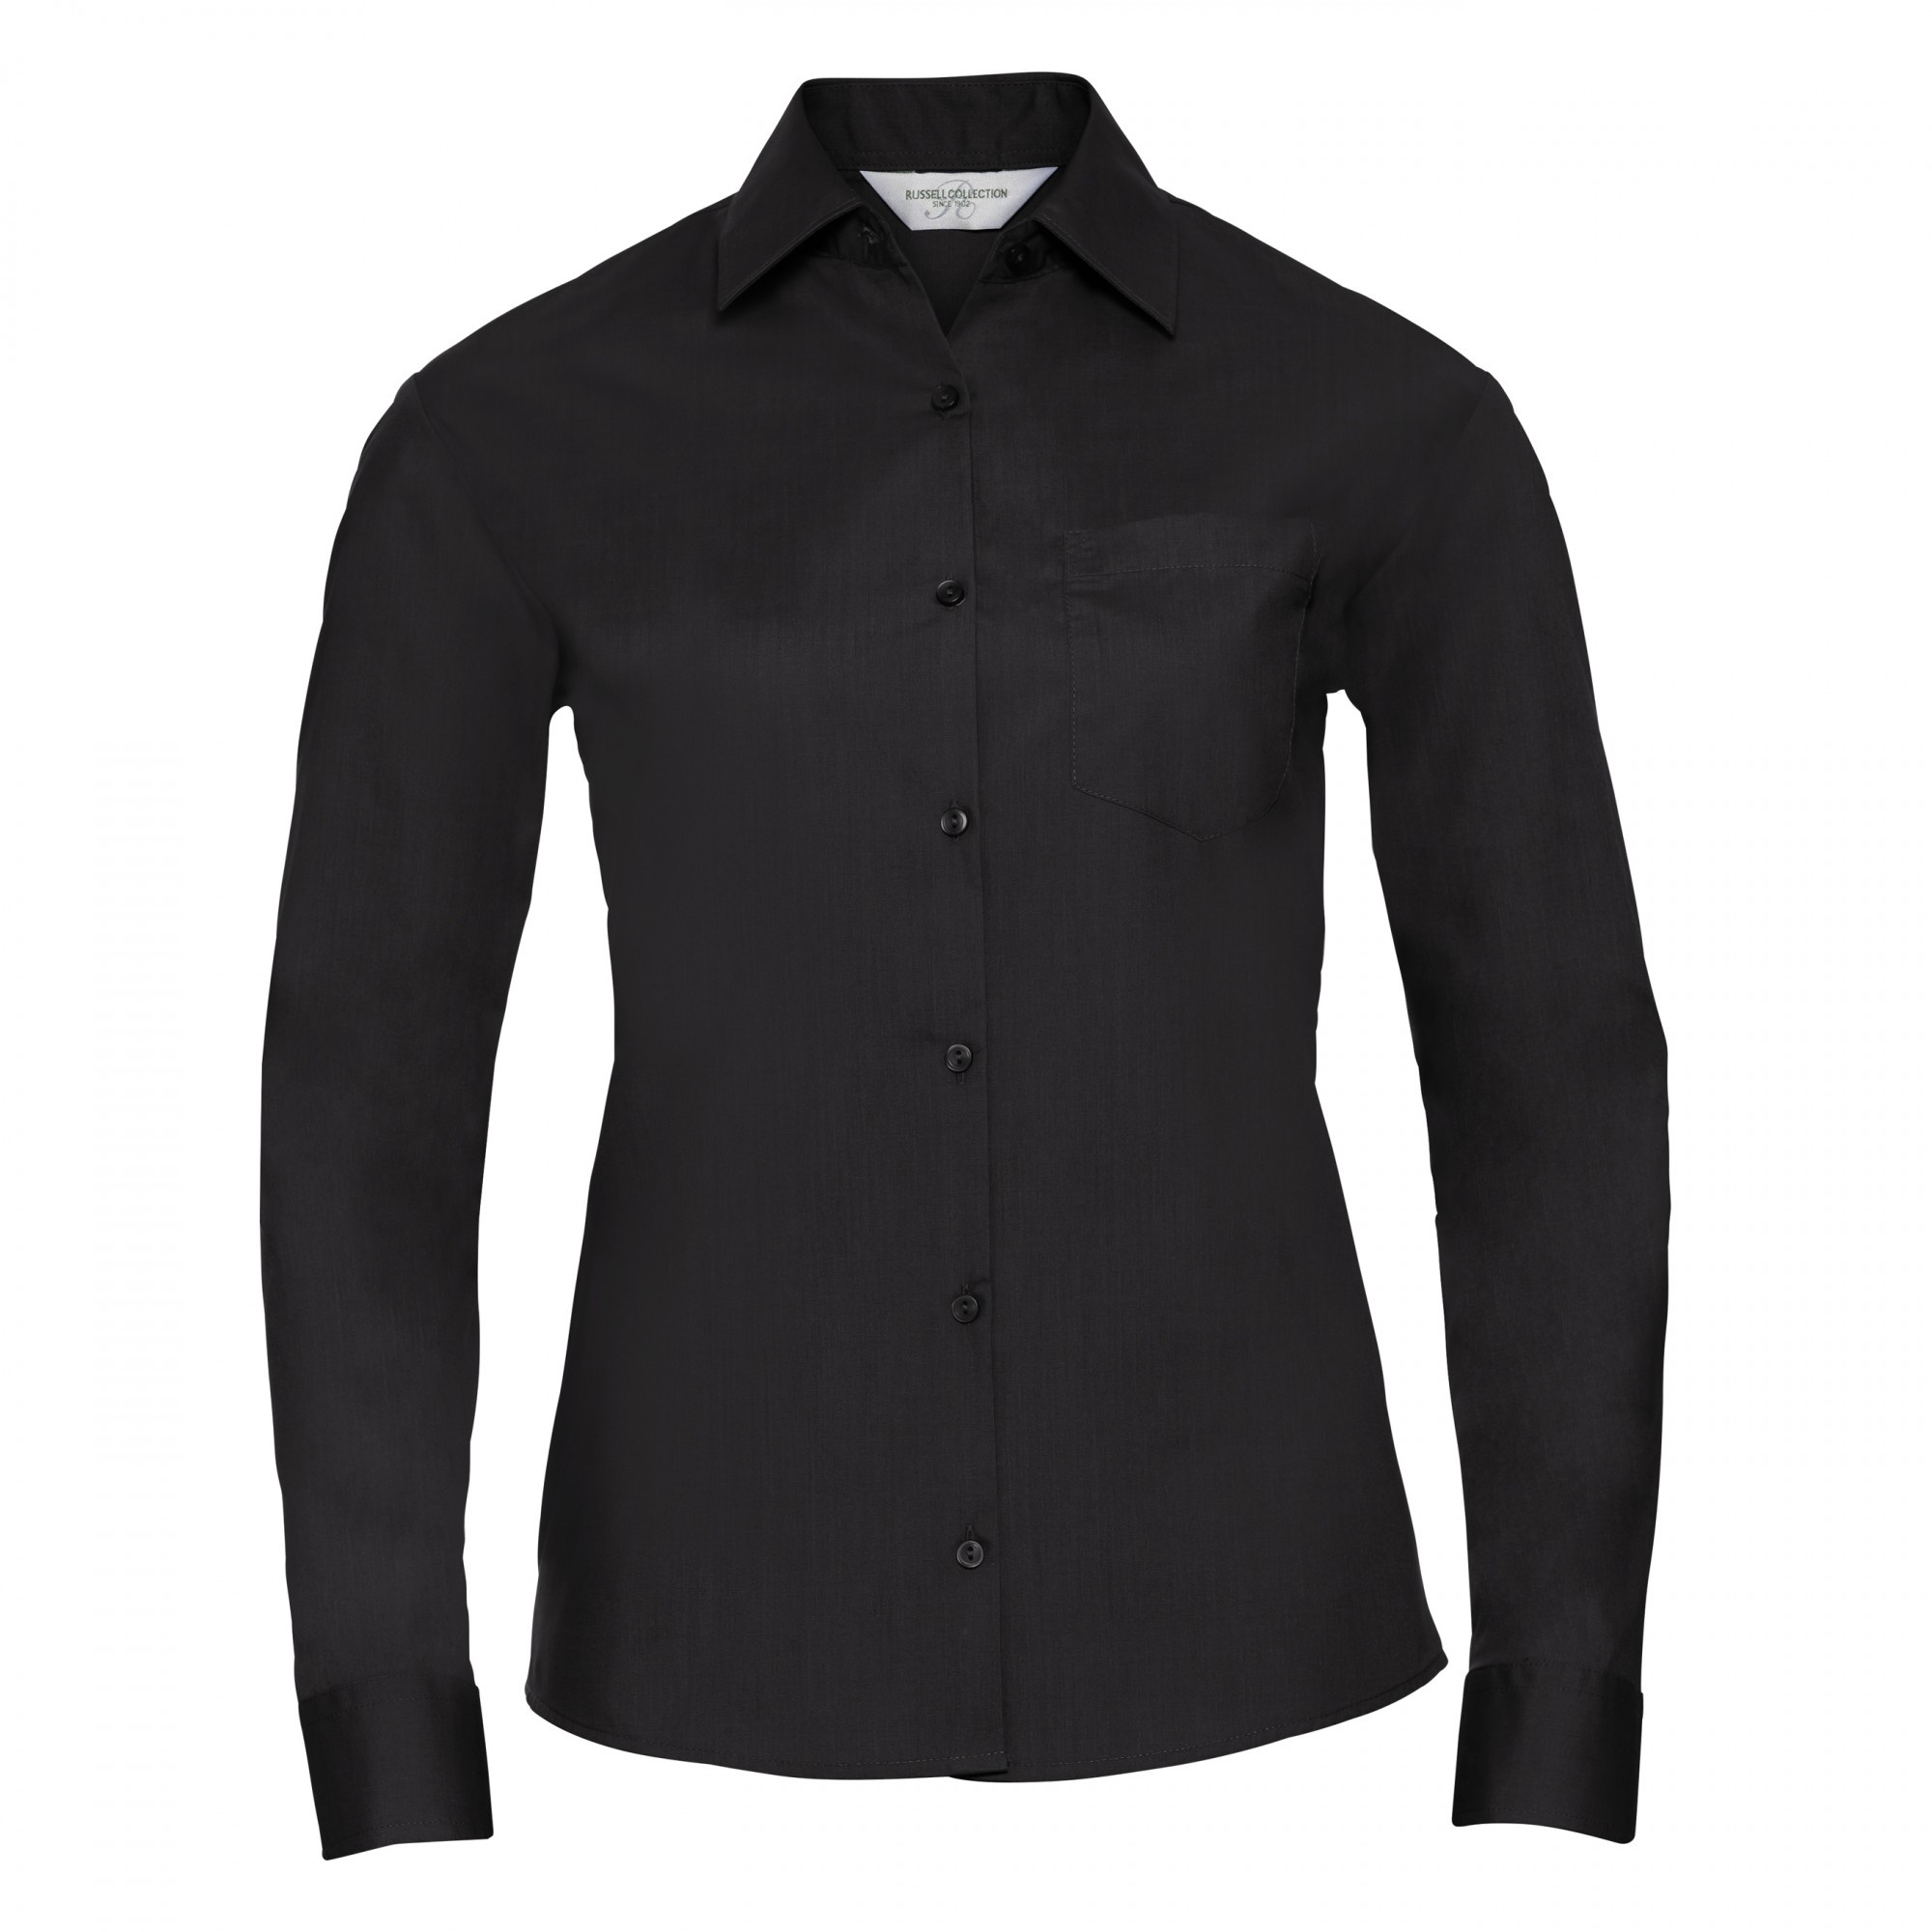 Russell Collection Ladies/Womens Long Sleeve Shirt (M) (Black)